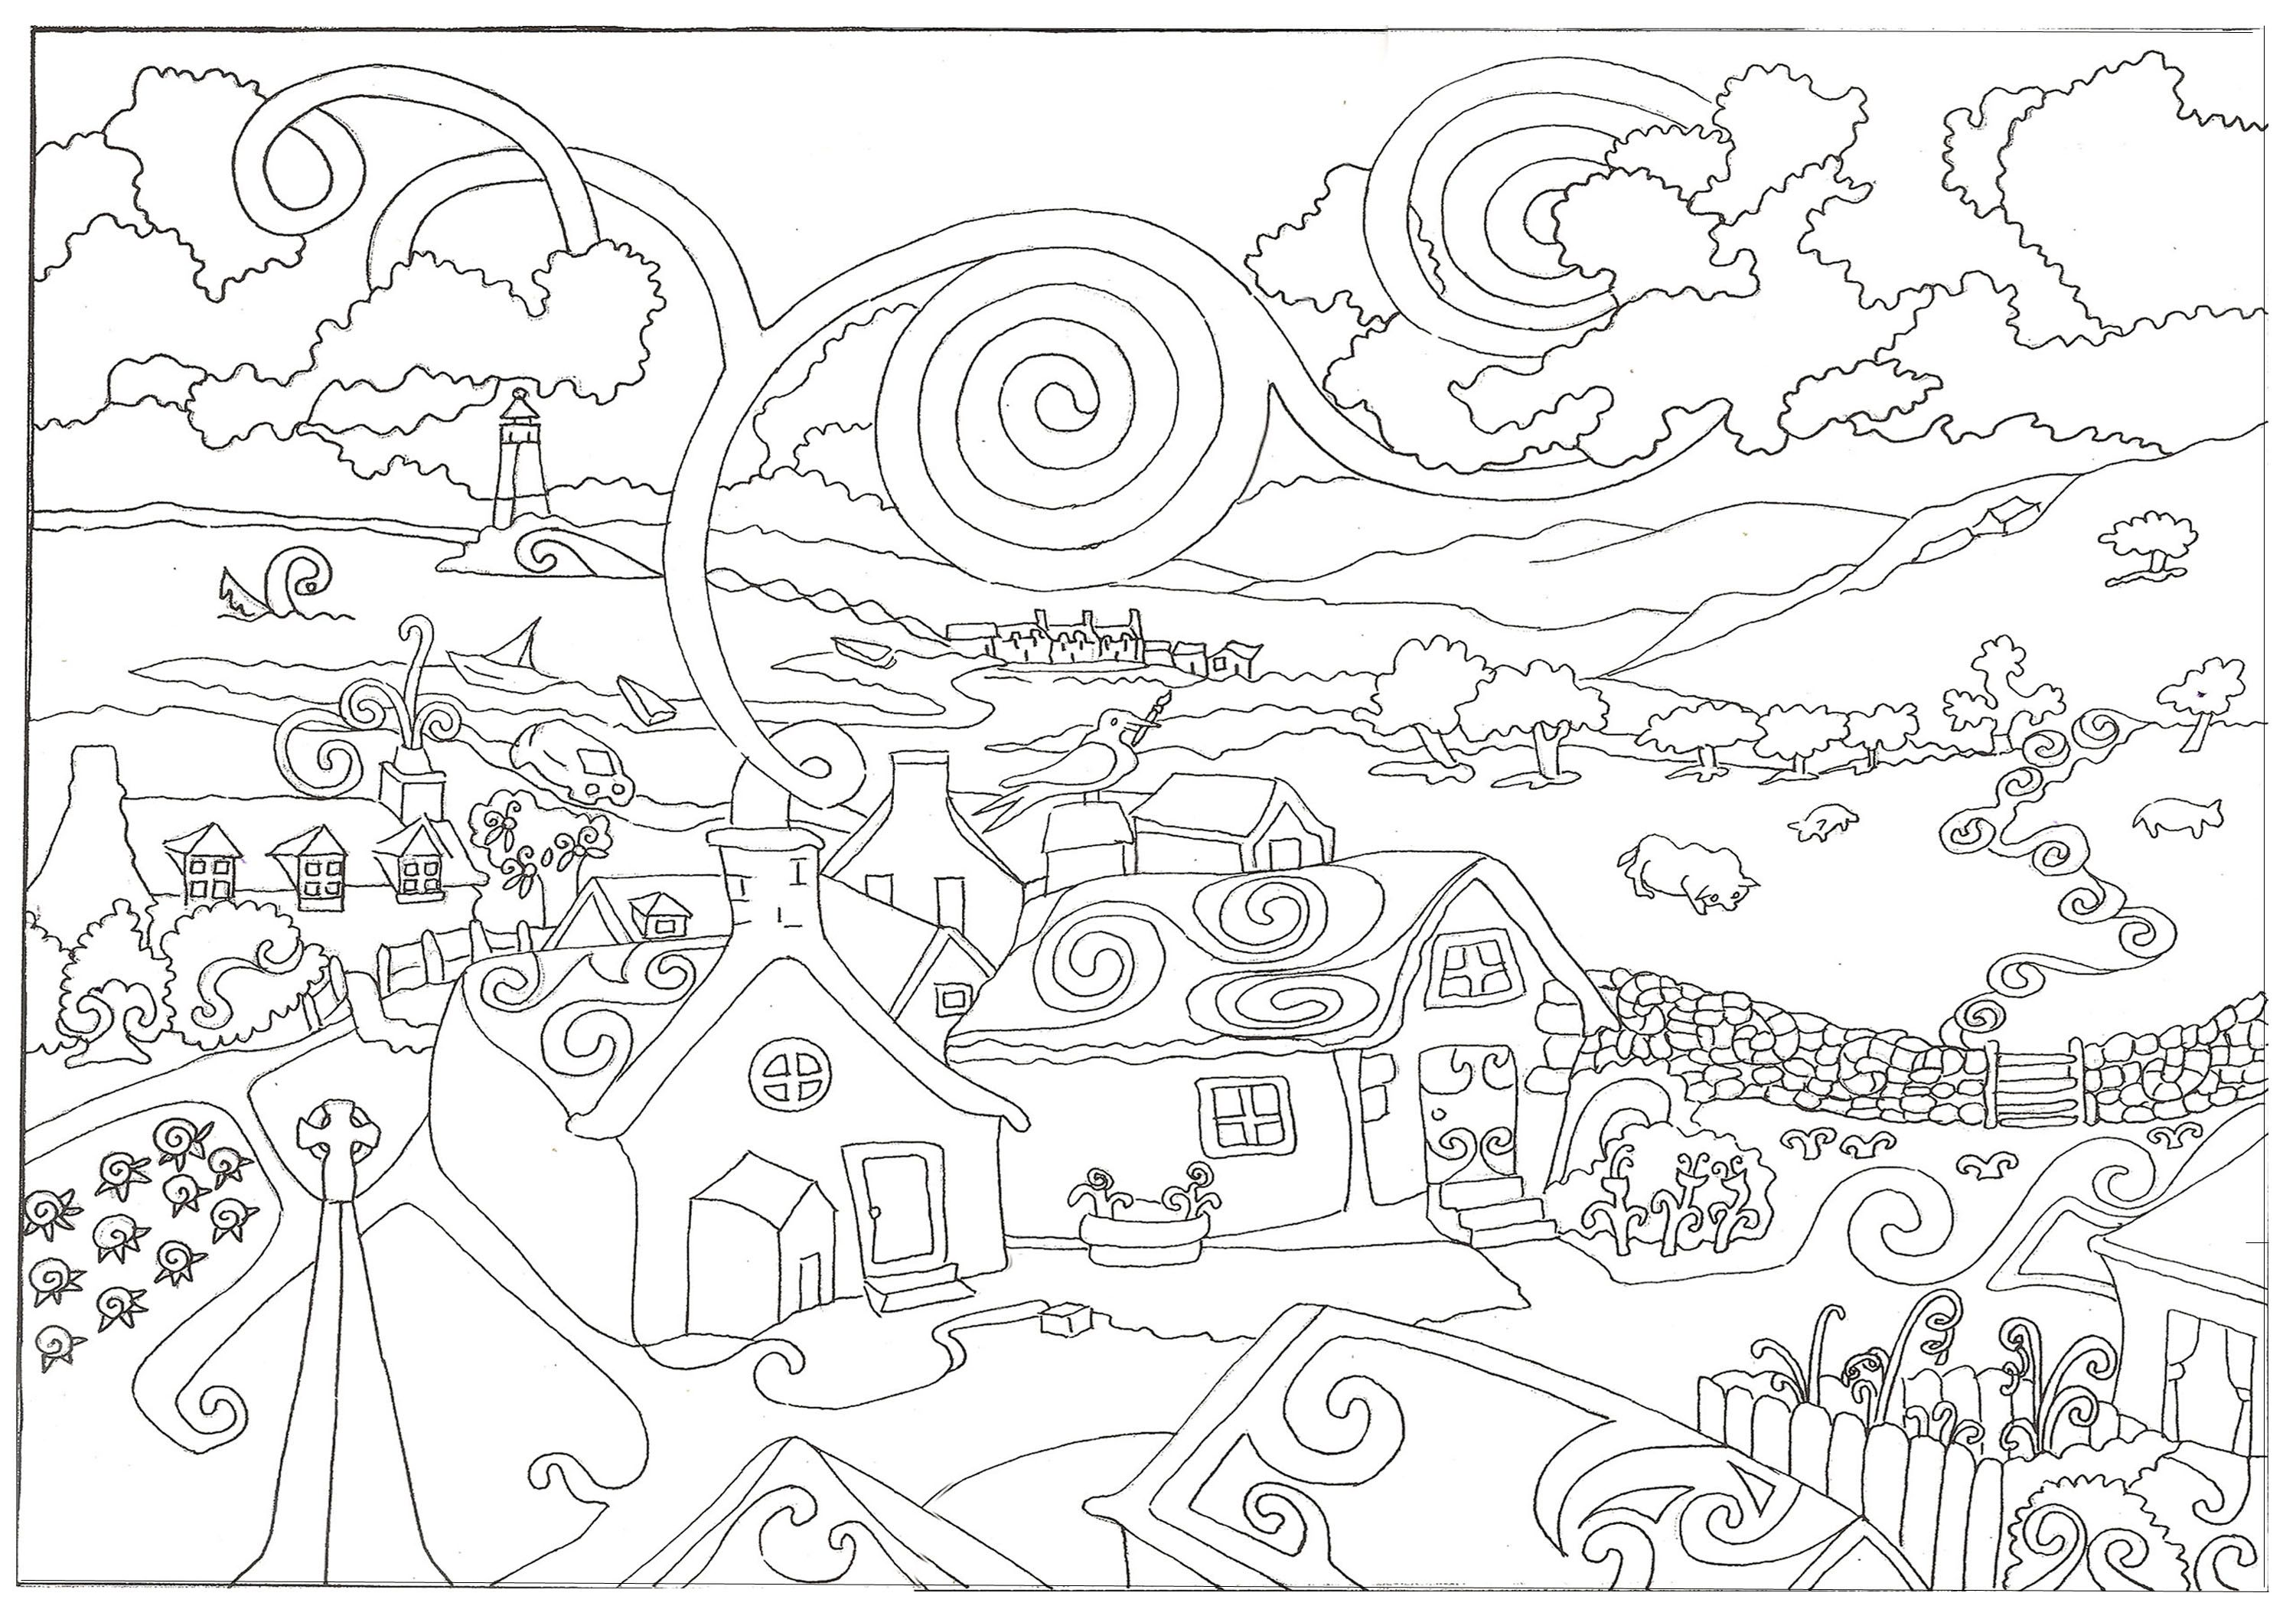 Fun Hard Coloring Pages For Kids - Coloring Home